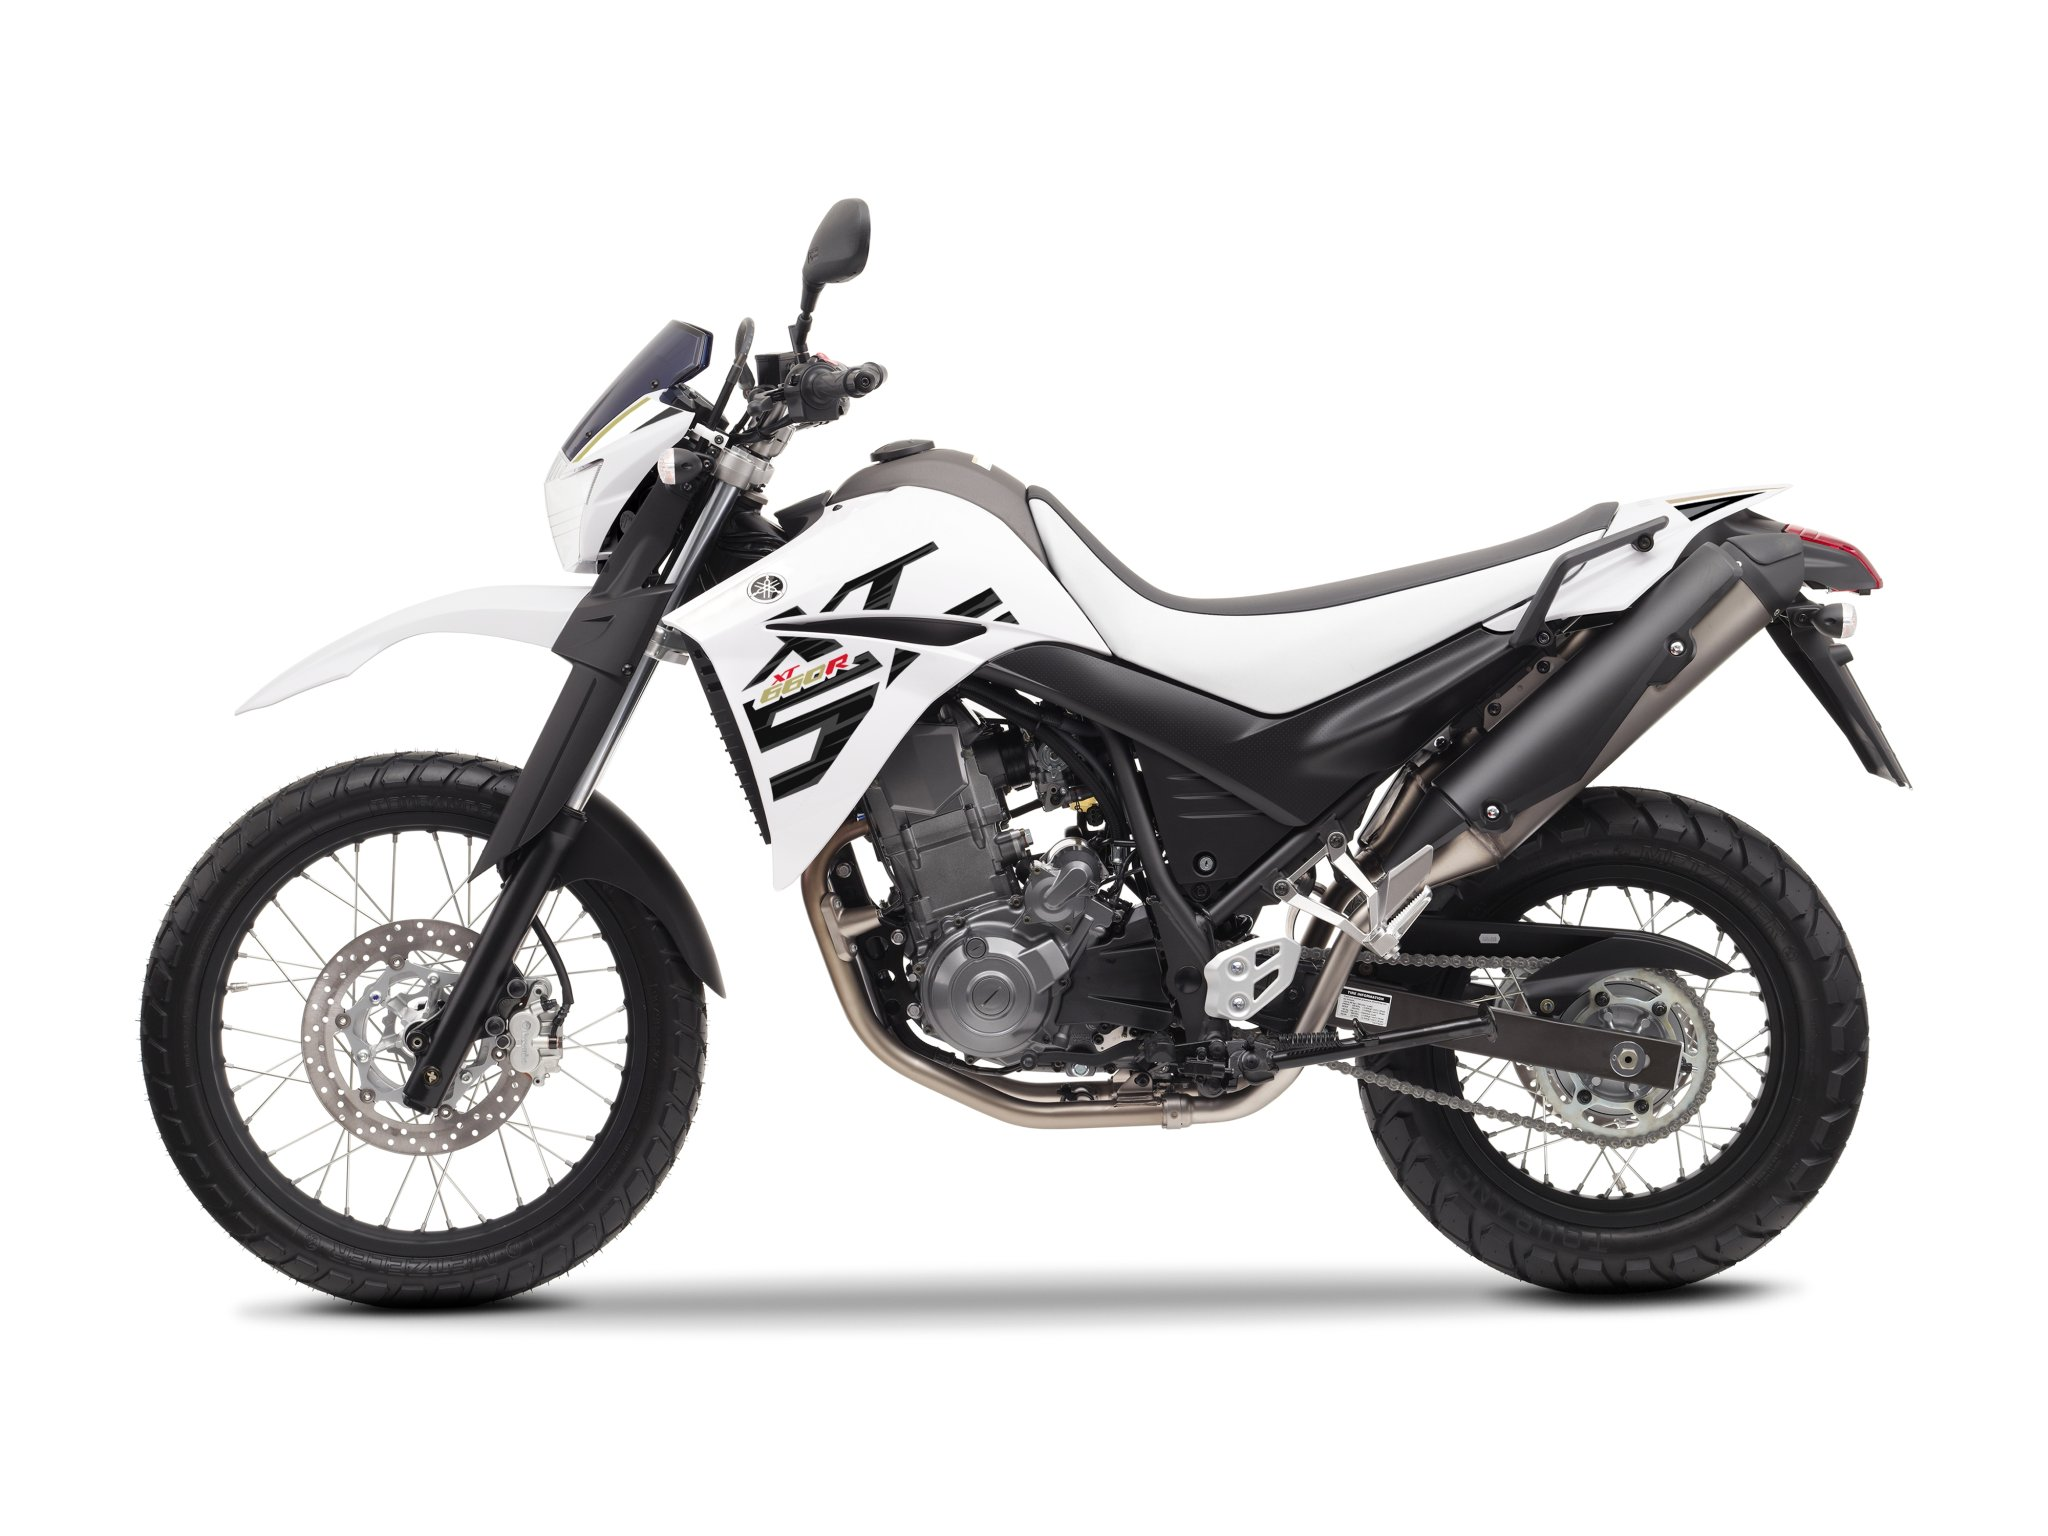 gebrauchte yamaha xt 660r motorr der kaufen. Black Bedroom Furniture Sets. Home Design Ideas